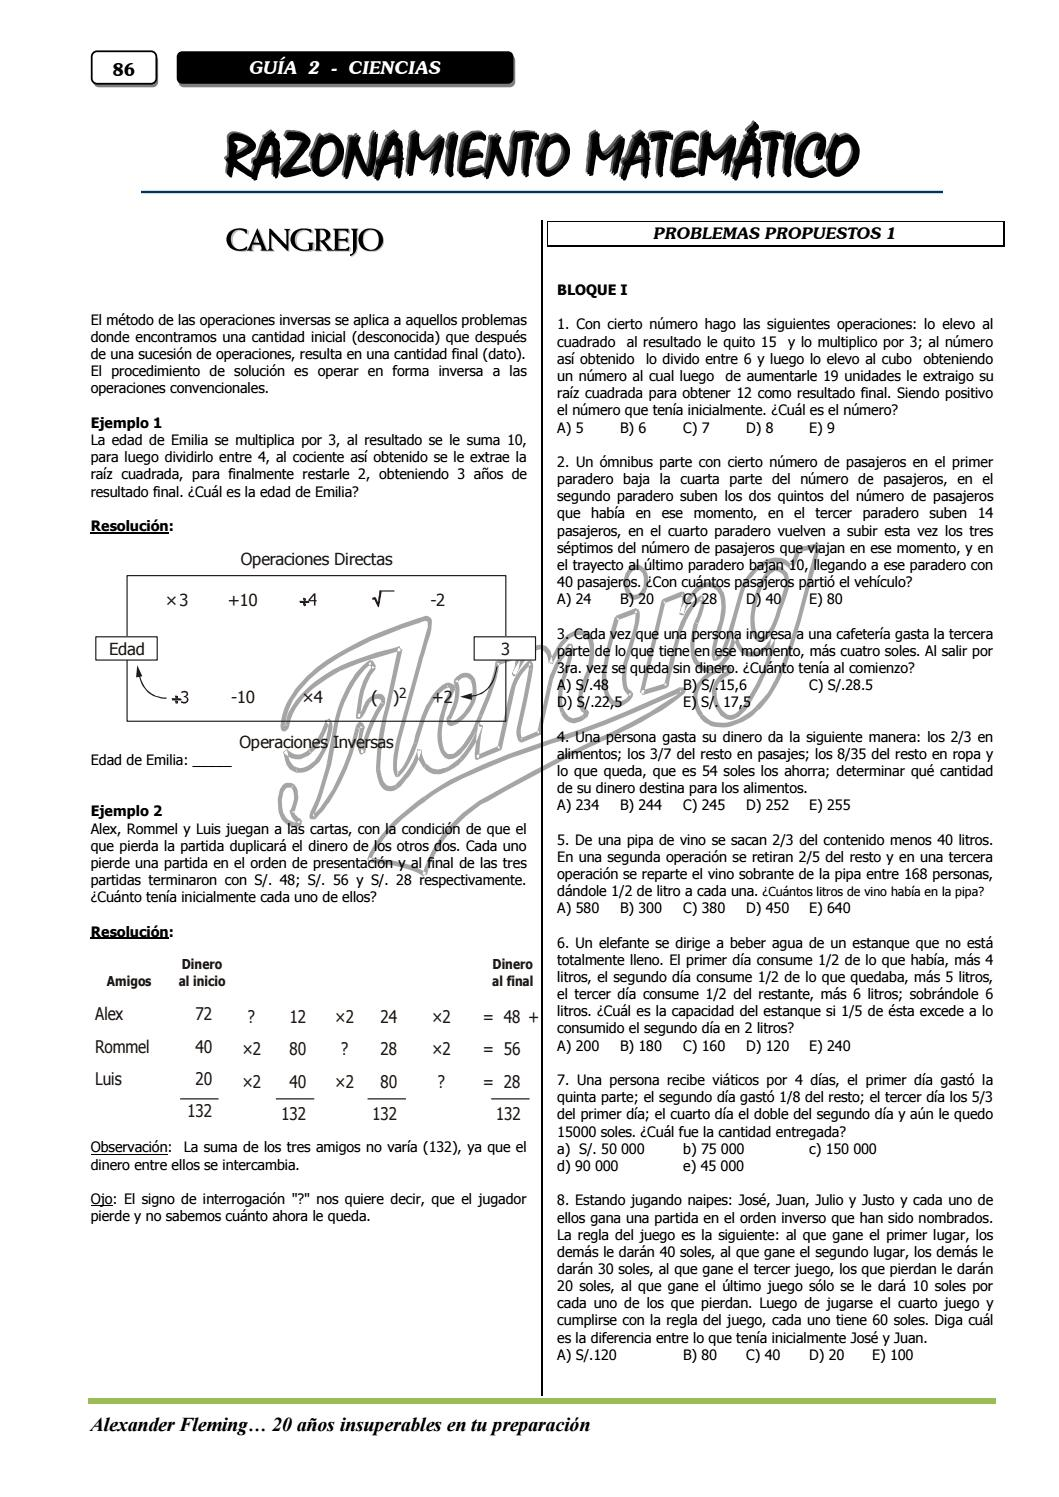 Raiz Cuadrada De 40 Razonamiento Matematico By William Cruz Espinoza Issuu